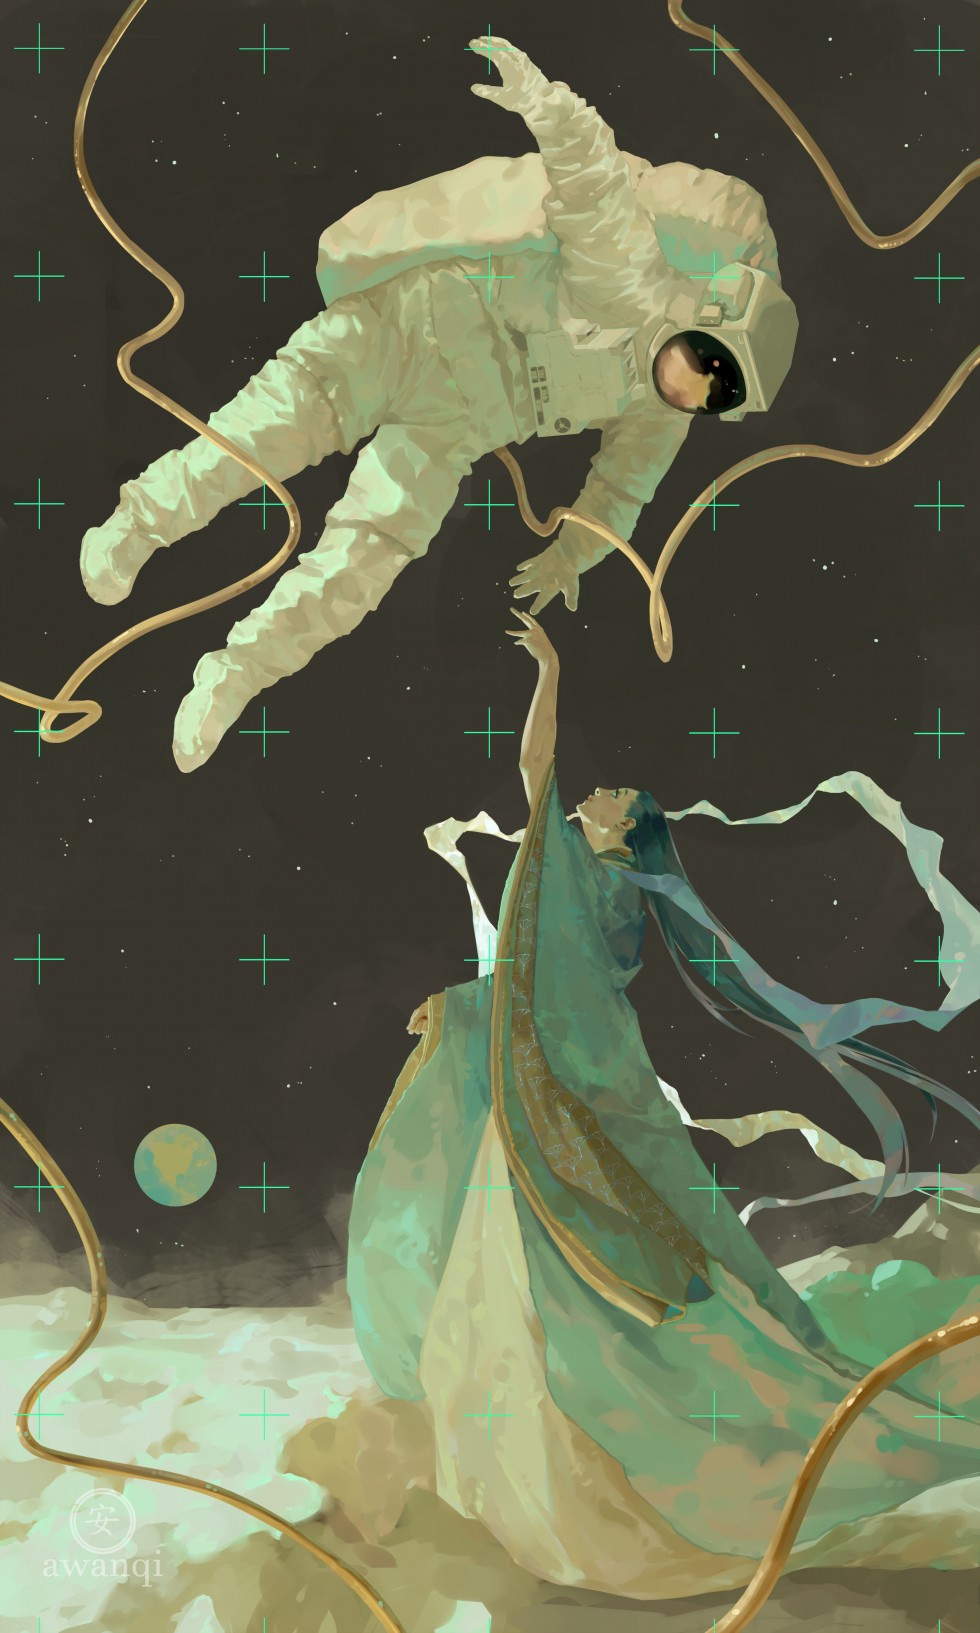 A young woman on the moon reaches out to an astronaut